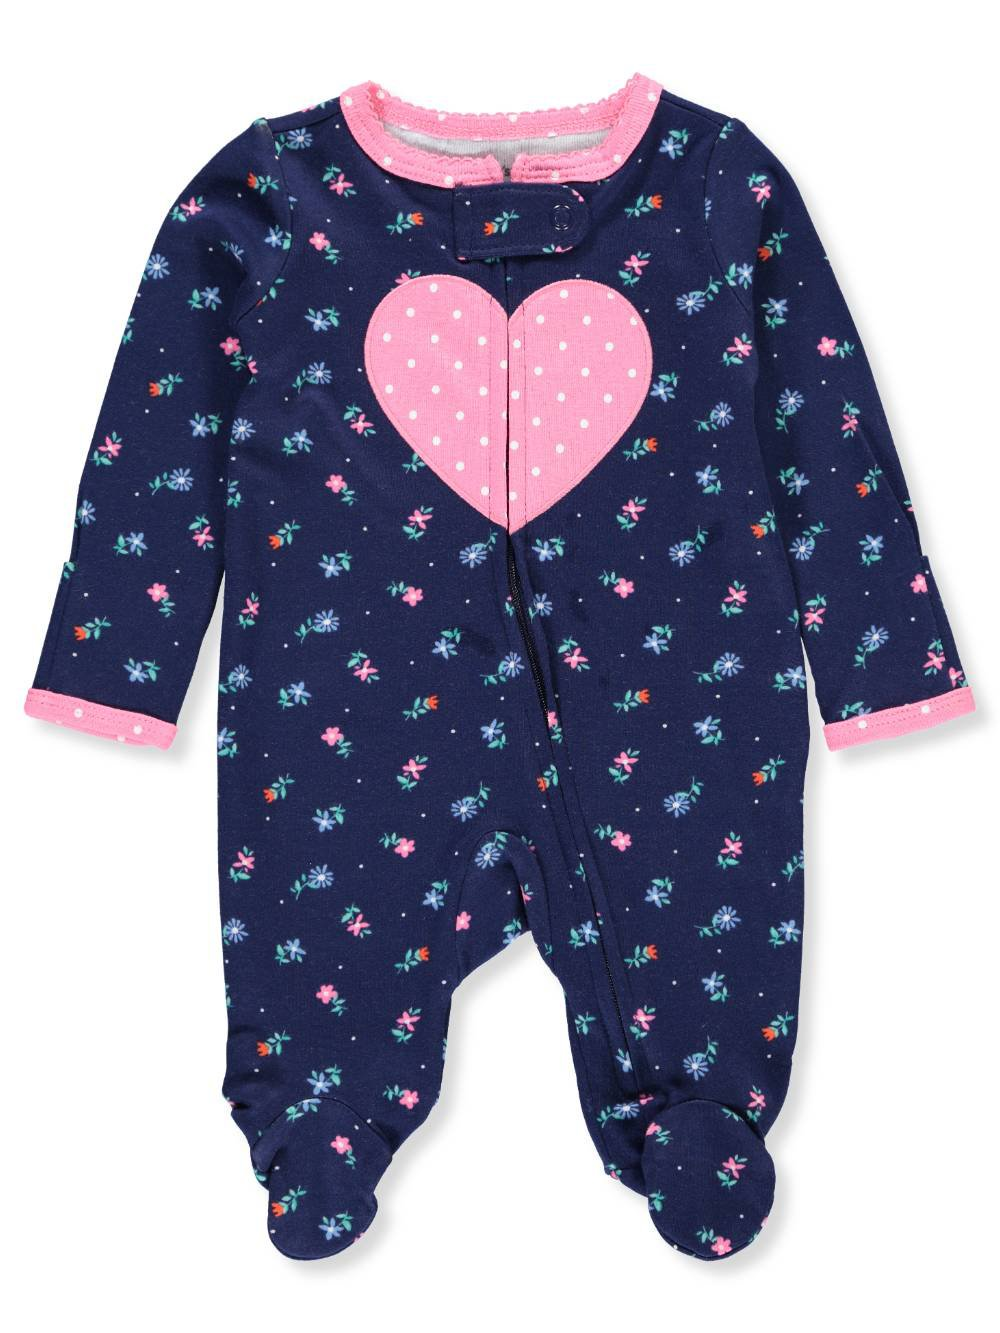 Carter's Baby Girls' Footed Coverall - Navy/Multi, 3 Months